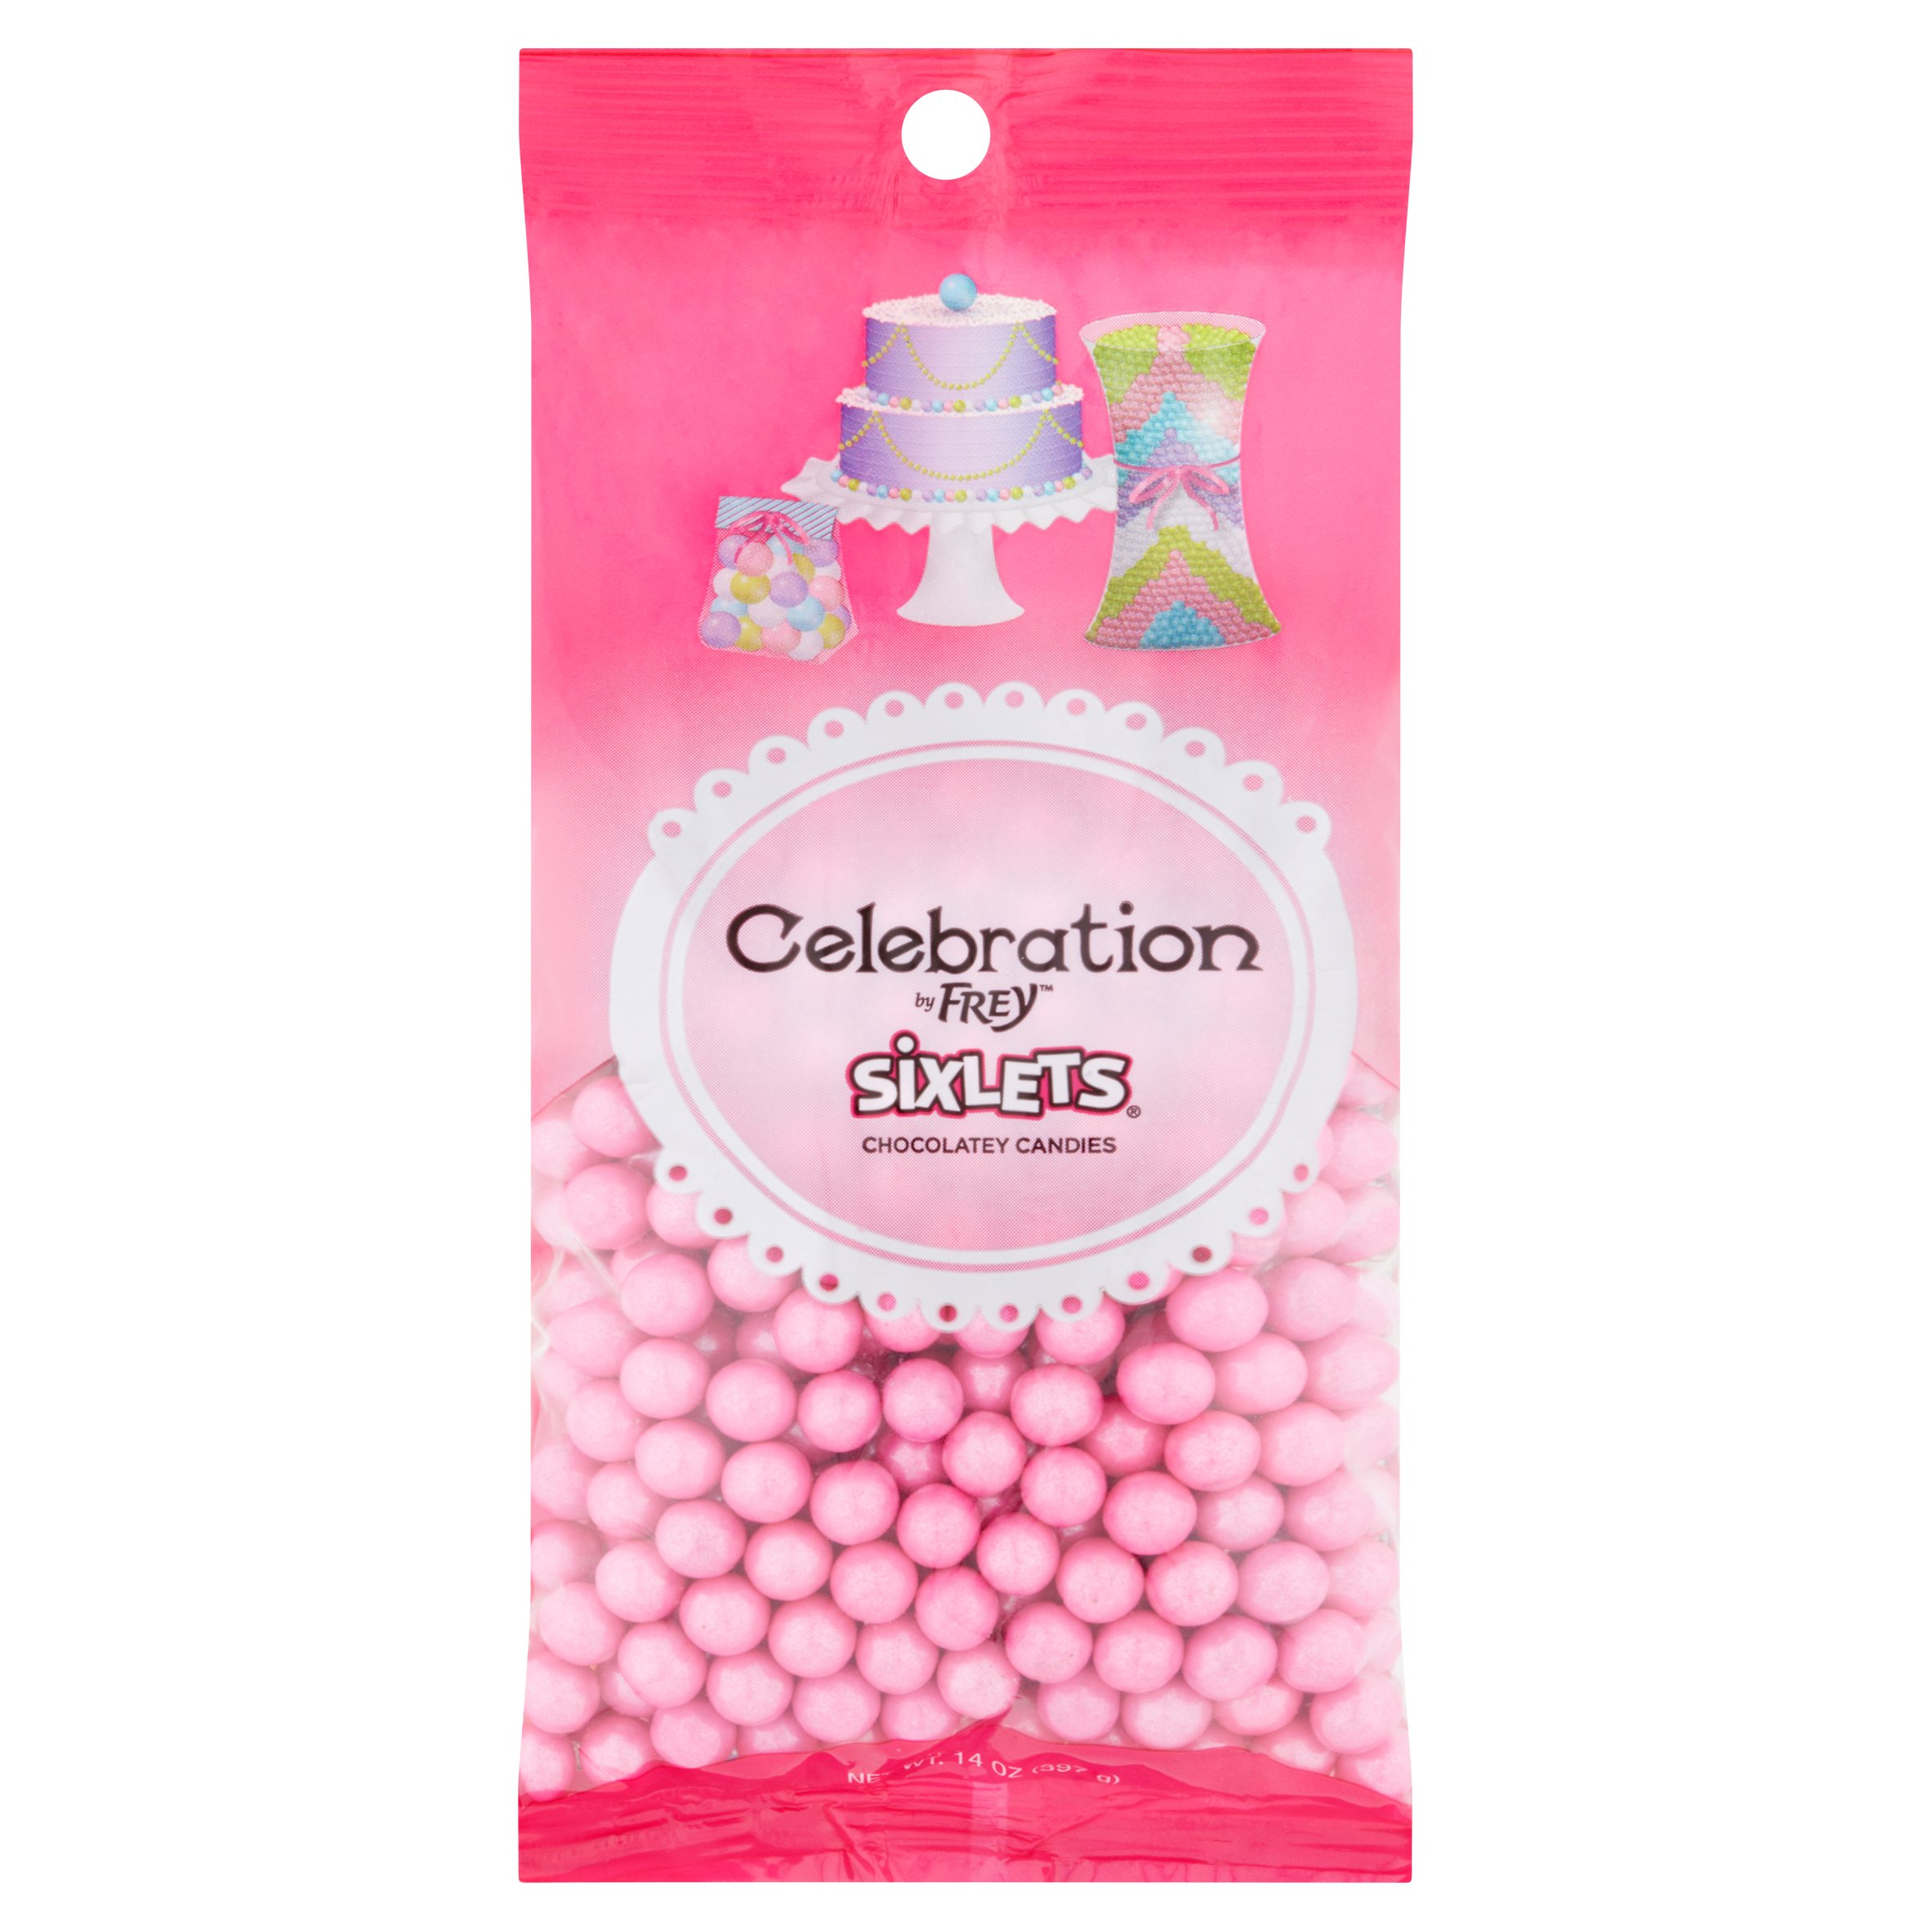 Celebration by SweetWorks Sixlets Chocolate Flavored Pink Candy, 14 oz by SweetWorks Confections, LLC, A Chocolat Frey Company.